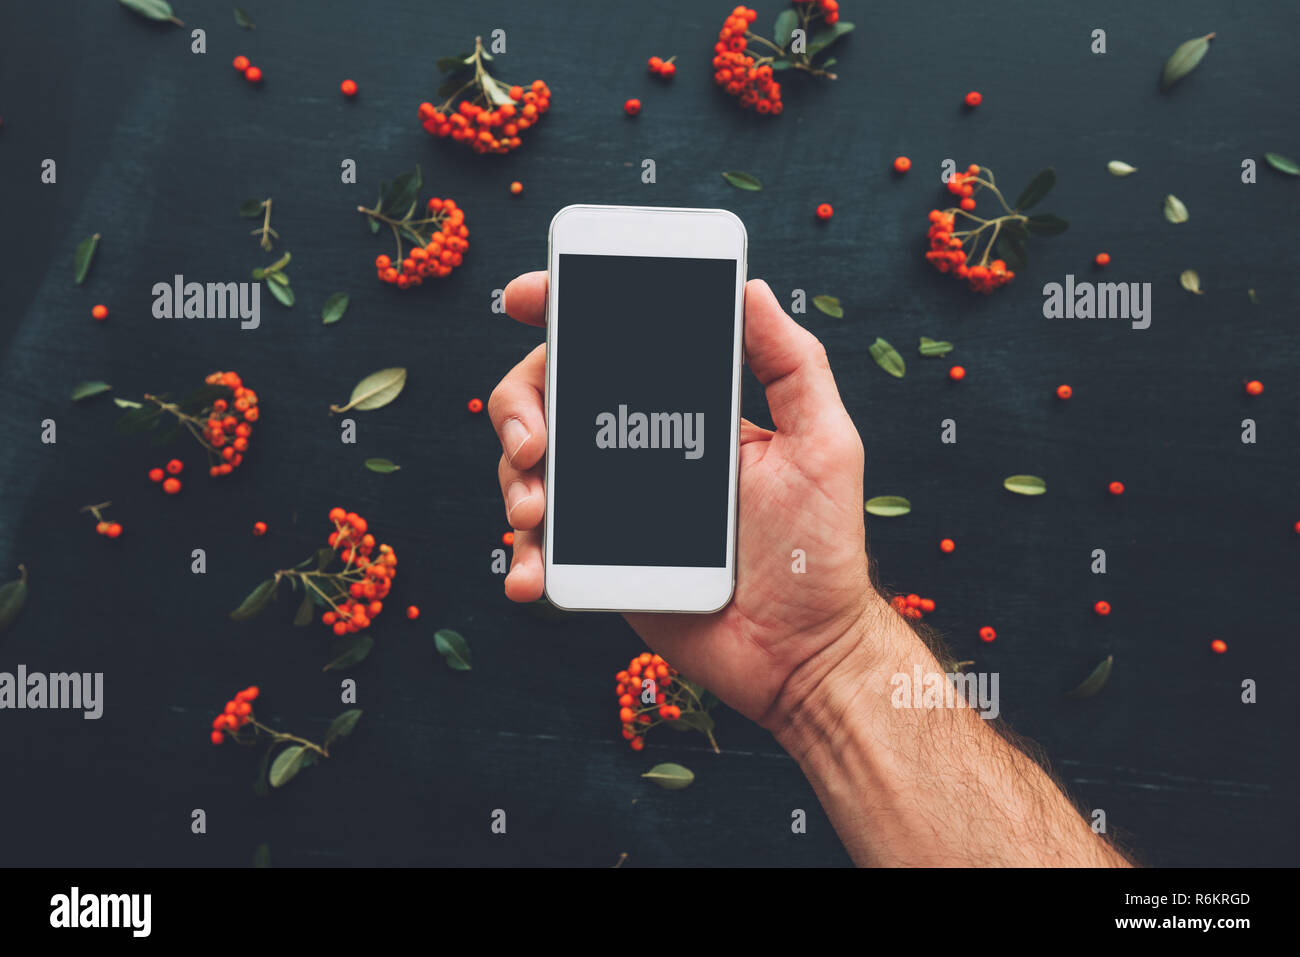 Fruit Chat Stock Photos & Fruit Chat Stock Images - Alamy